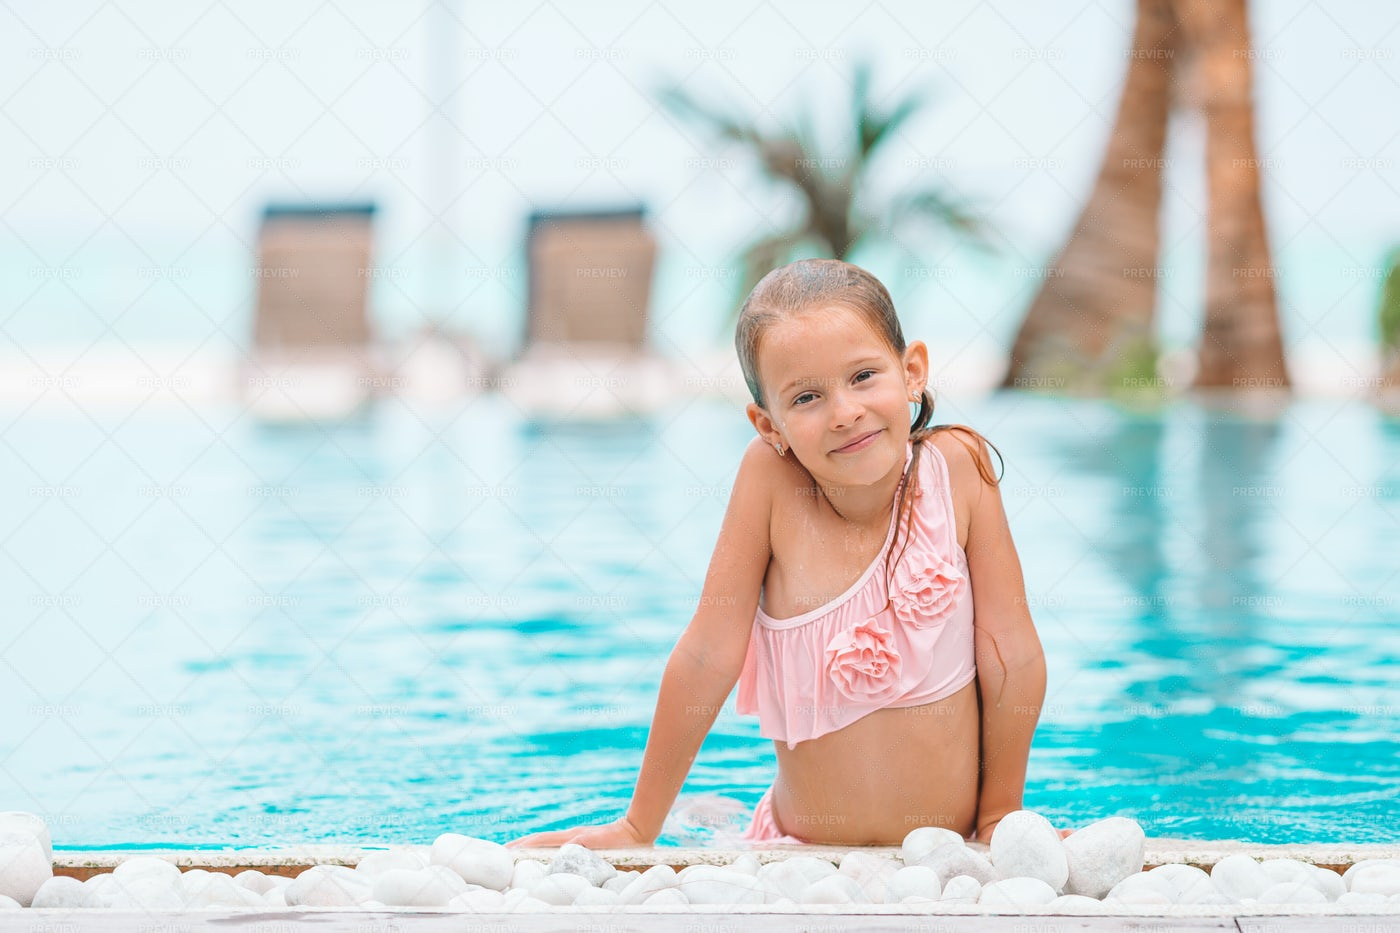 Little Girl In A Swimming Pool: Stock Photos